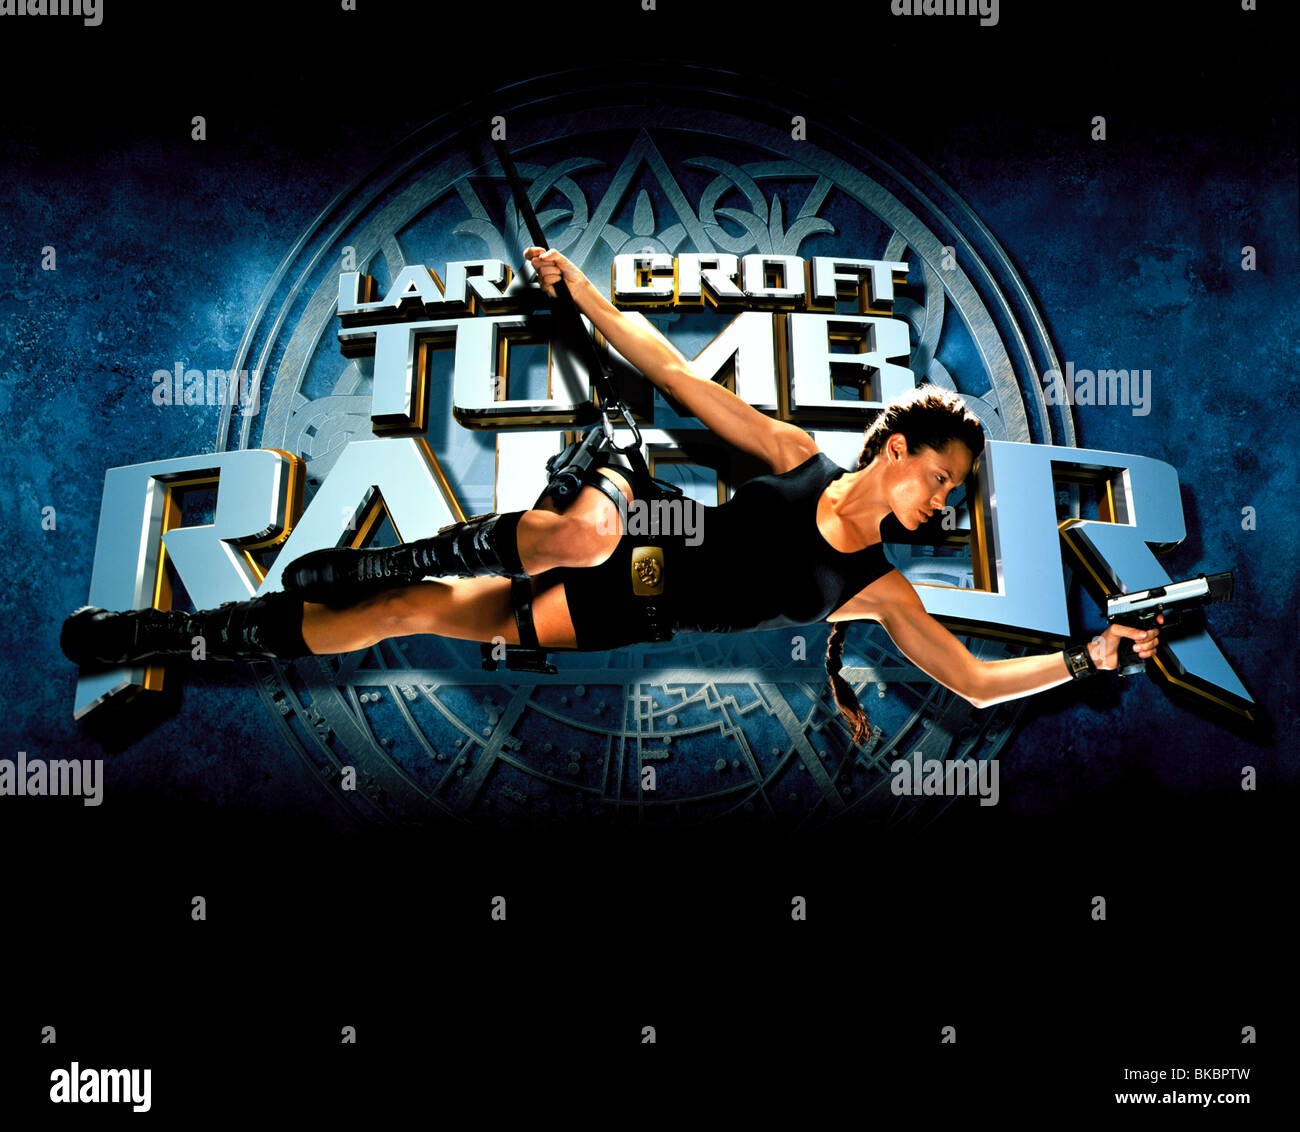 lara croft tomb raider film 2001